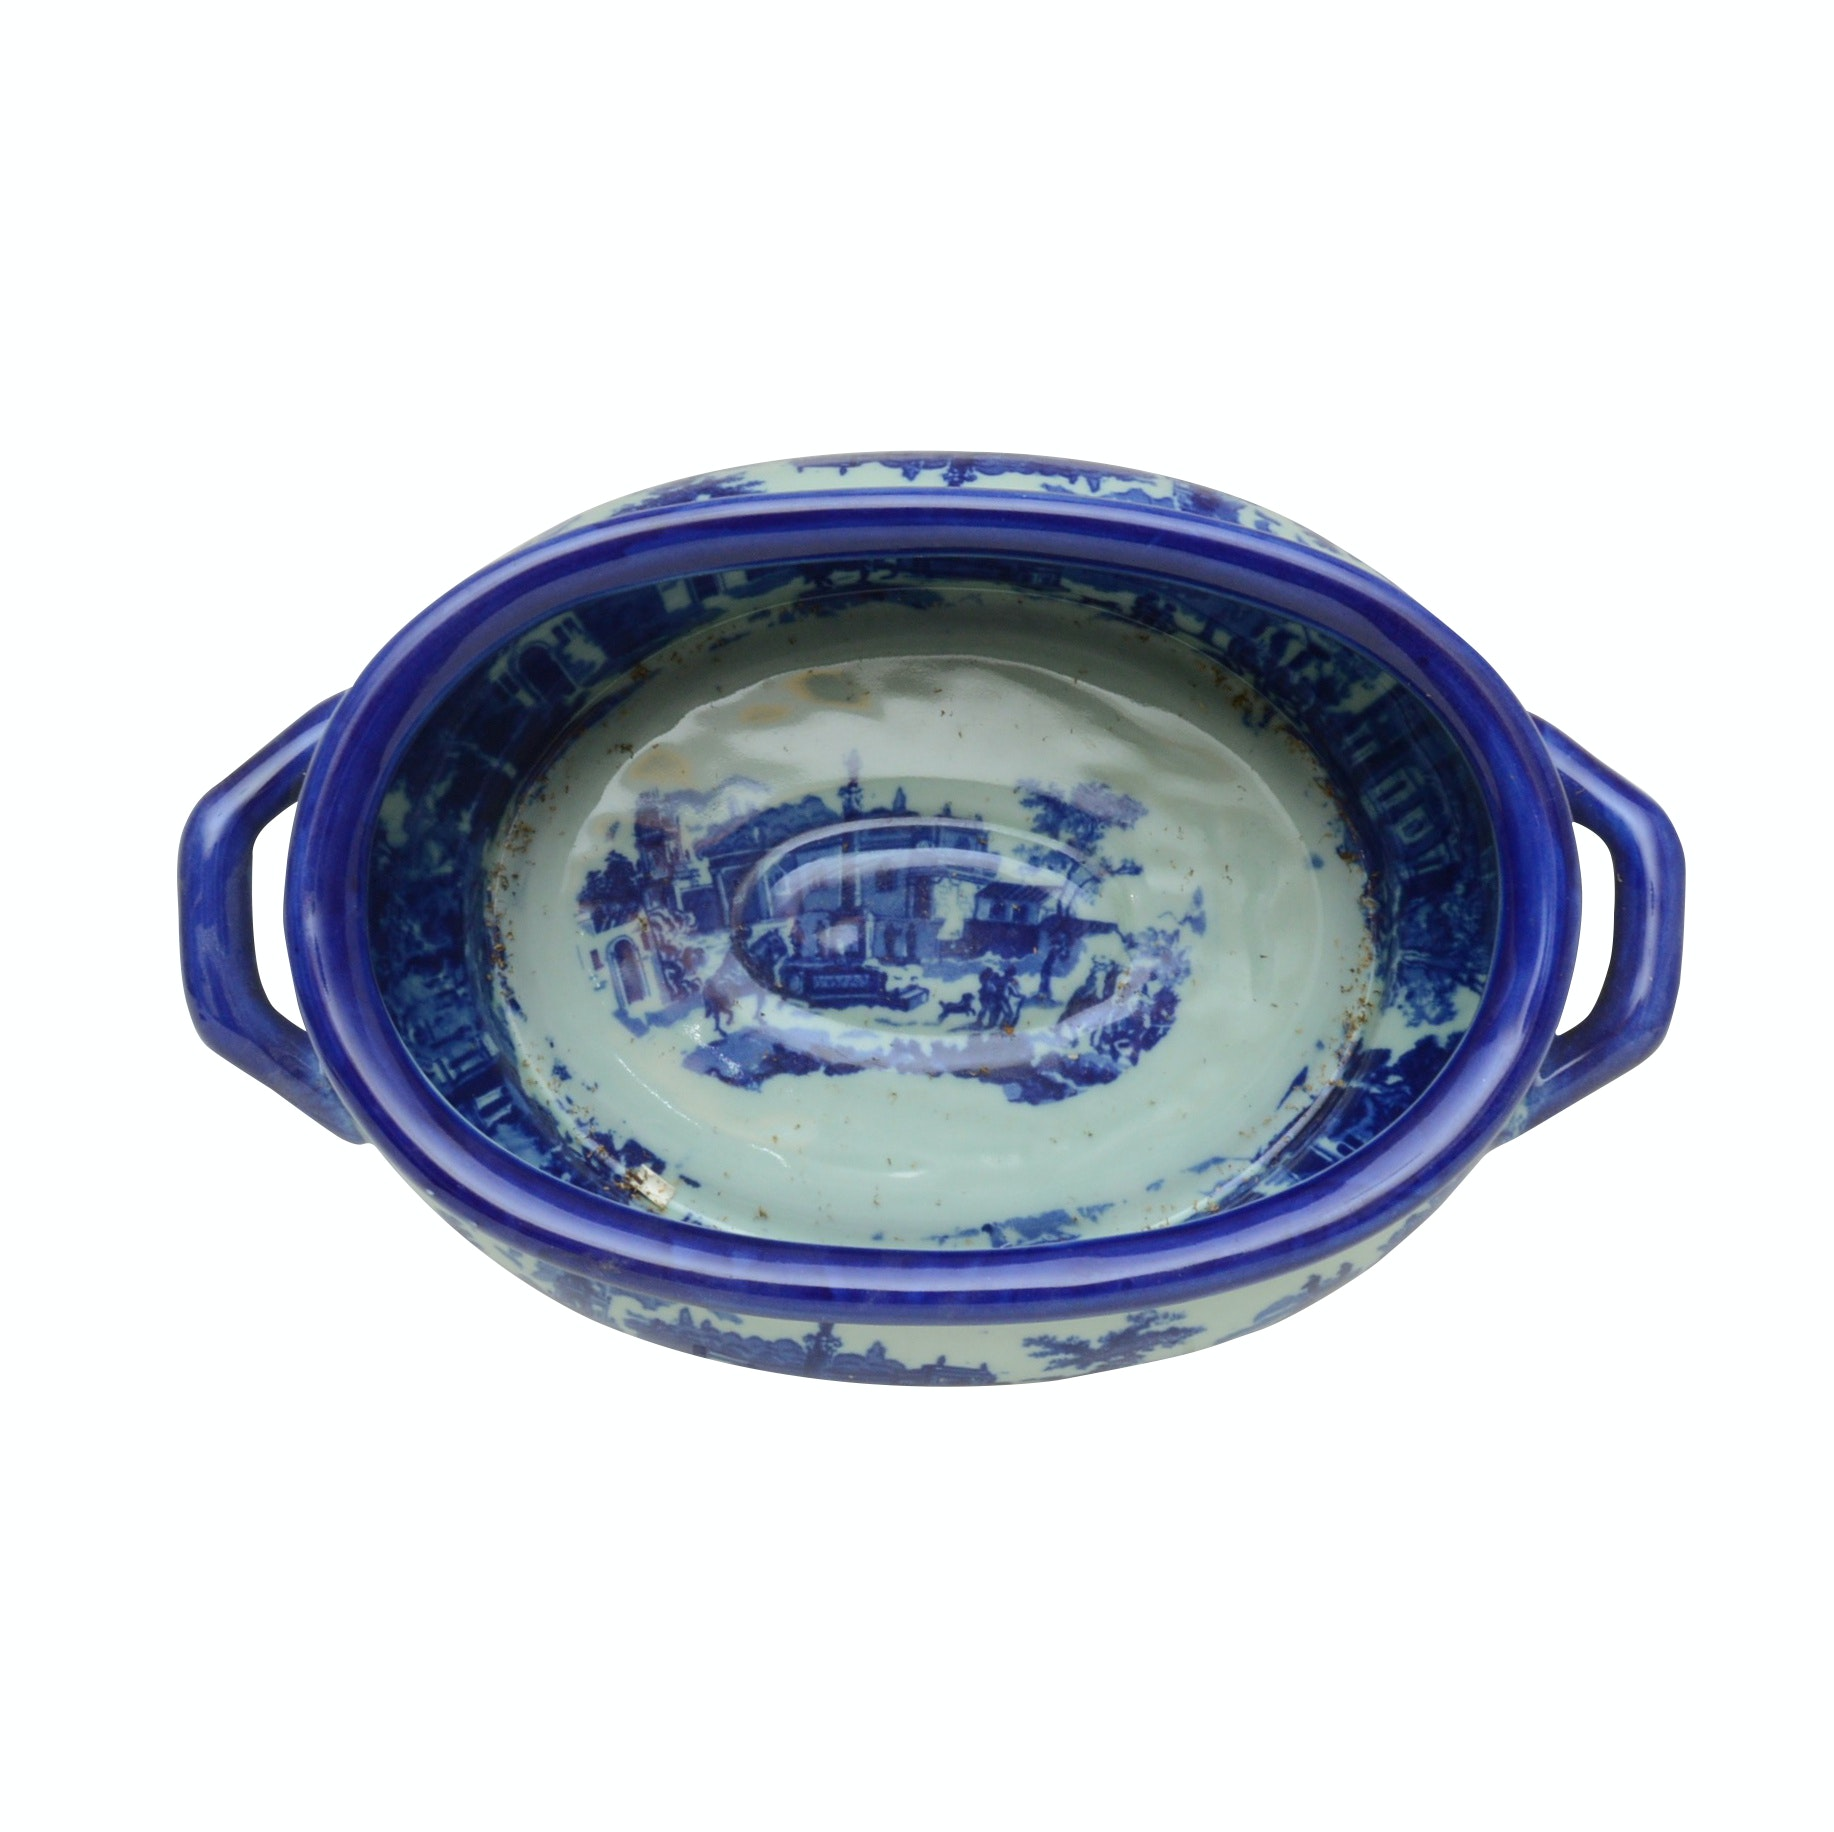 Blue and White Ironstone Centerpiece Bowl, Late 19th Century